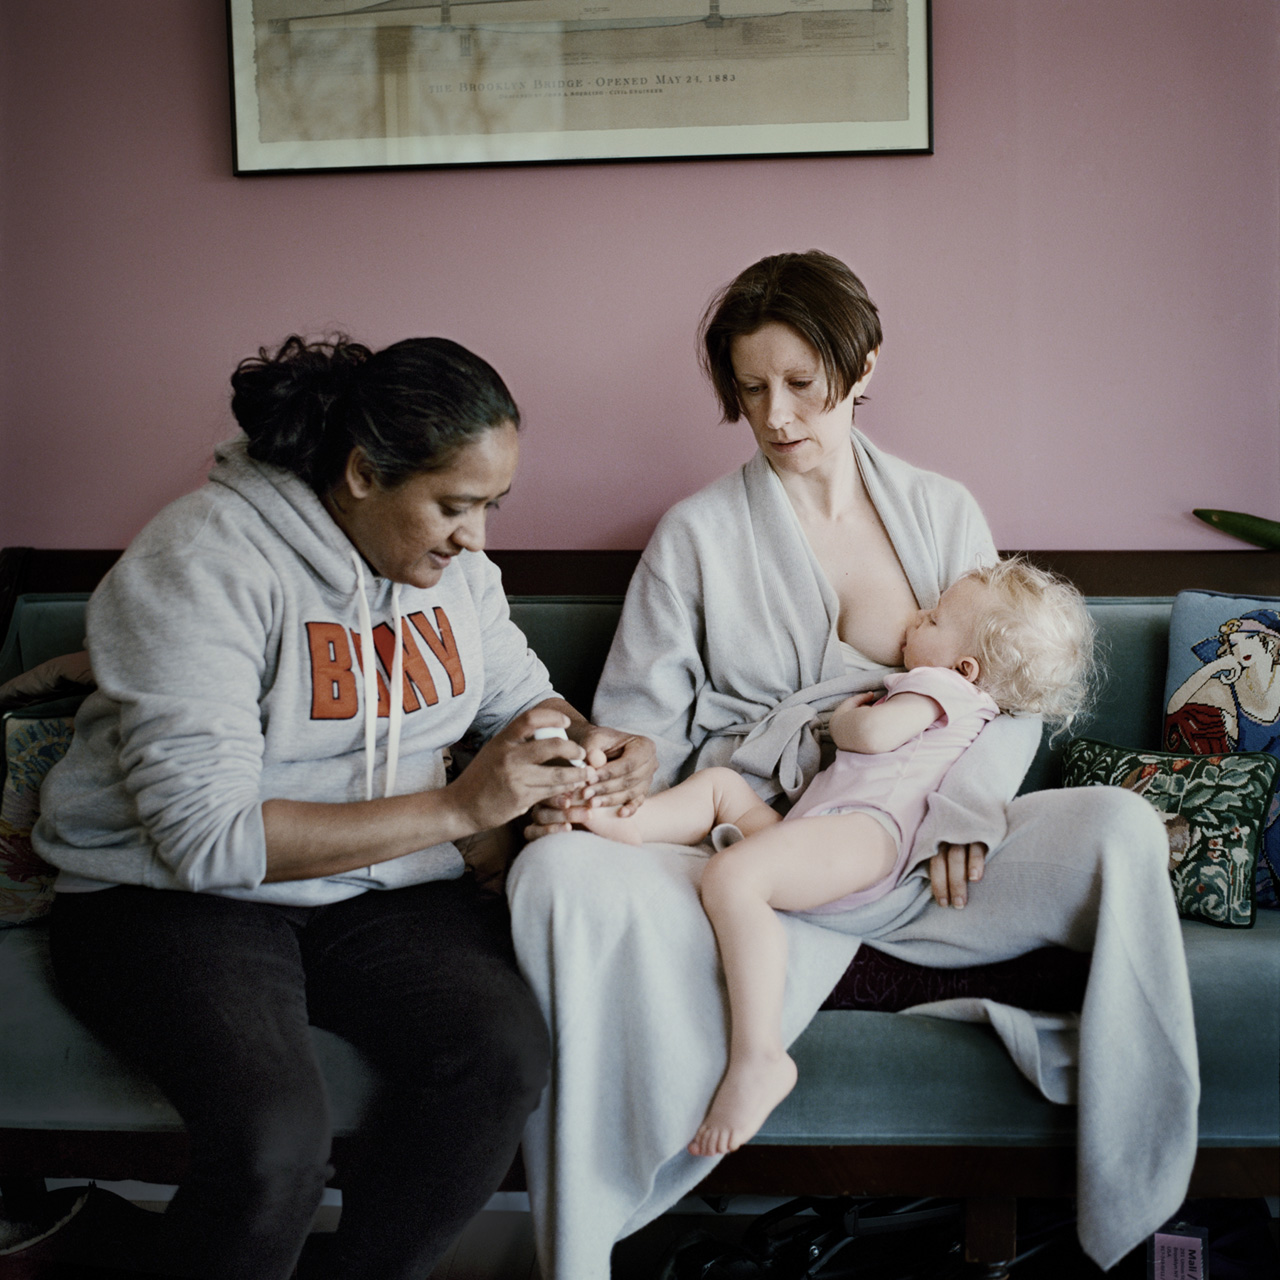 Rachel nurses her 16 month old daughter Michaela while her nanny, Annie, clips the child's toe nails in Brooklyn. Anastasia Taylor-Lind, Not Yet Titled, 2019. © Anastasia Taylor-Lind Fotografiska/TIME.